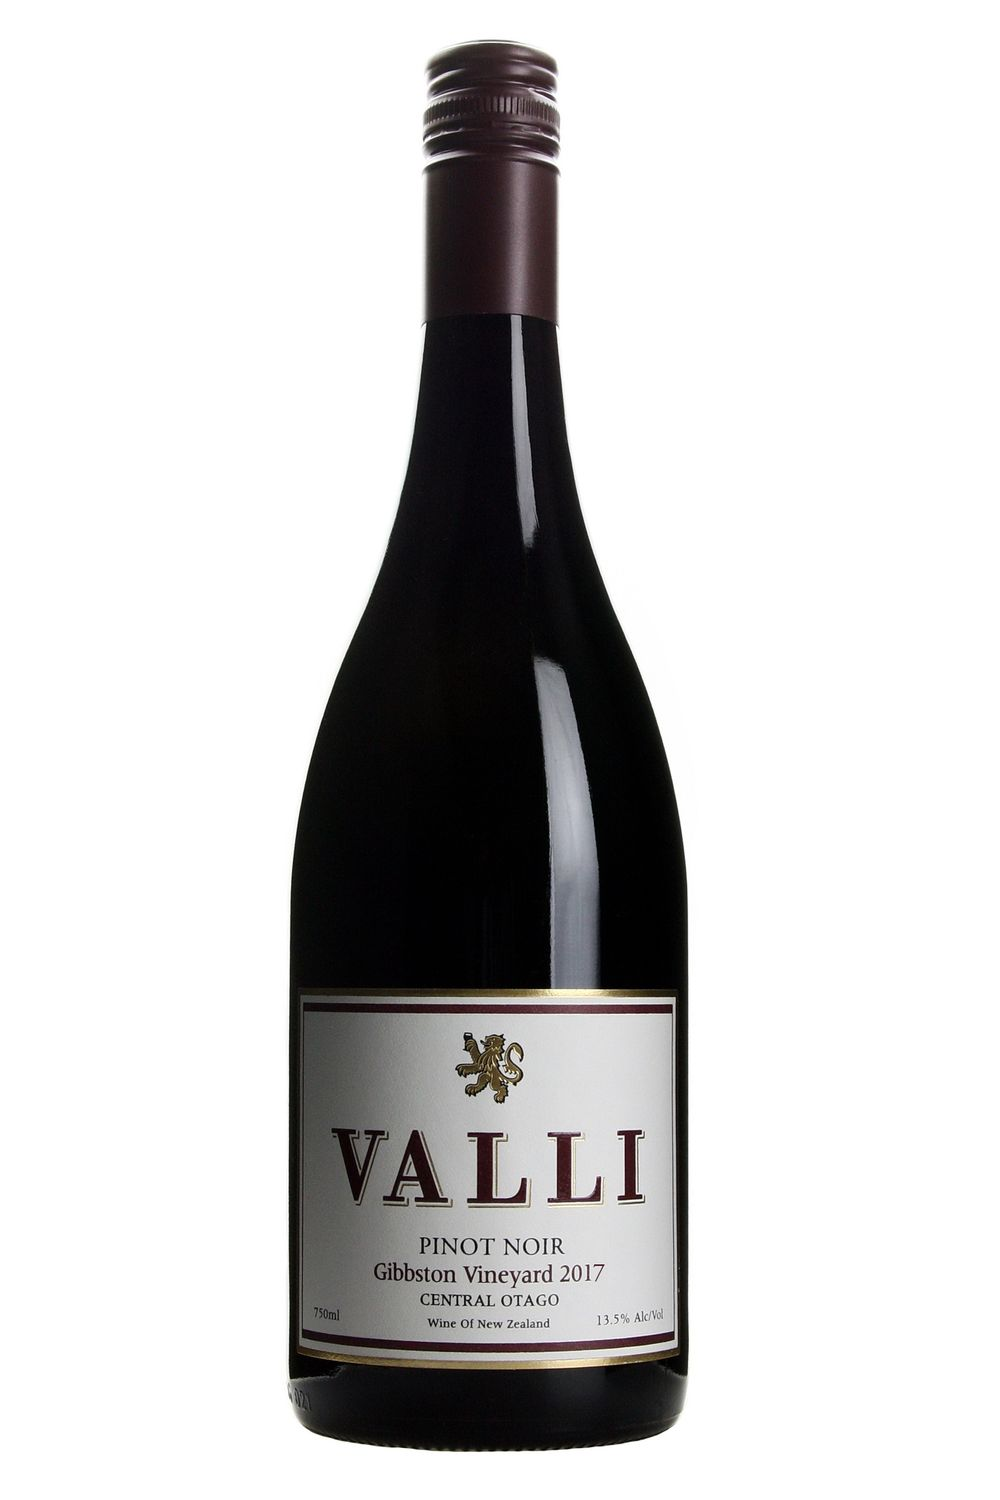 Valli Pinot Noir 2017 Gibbston